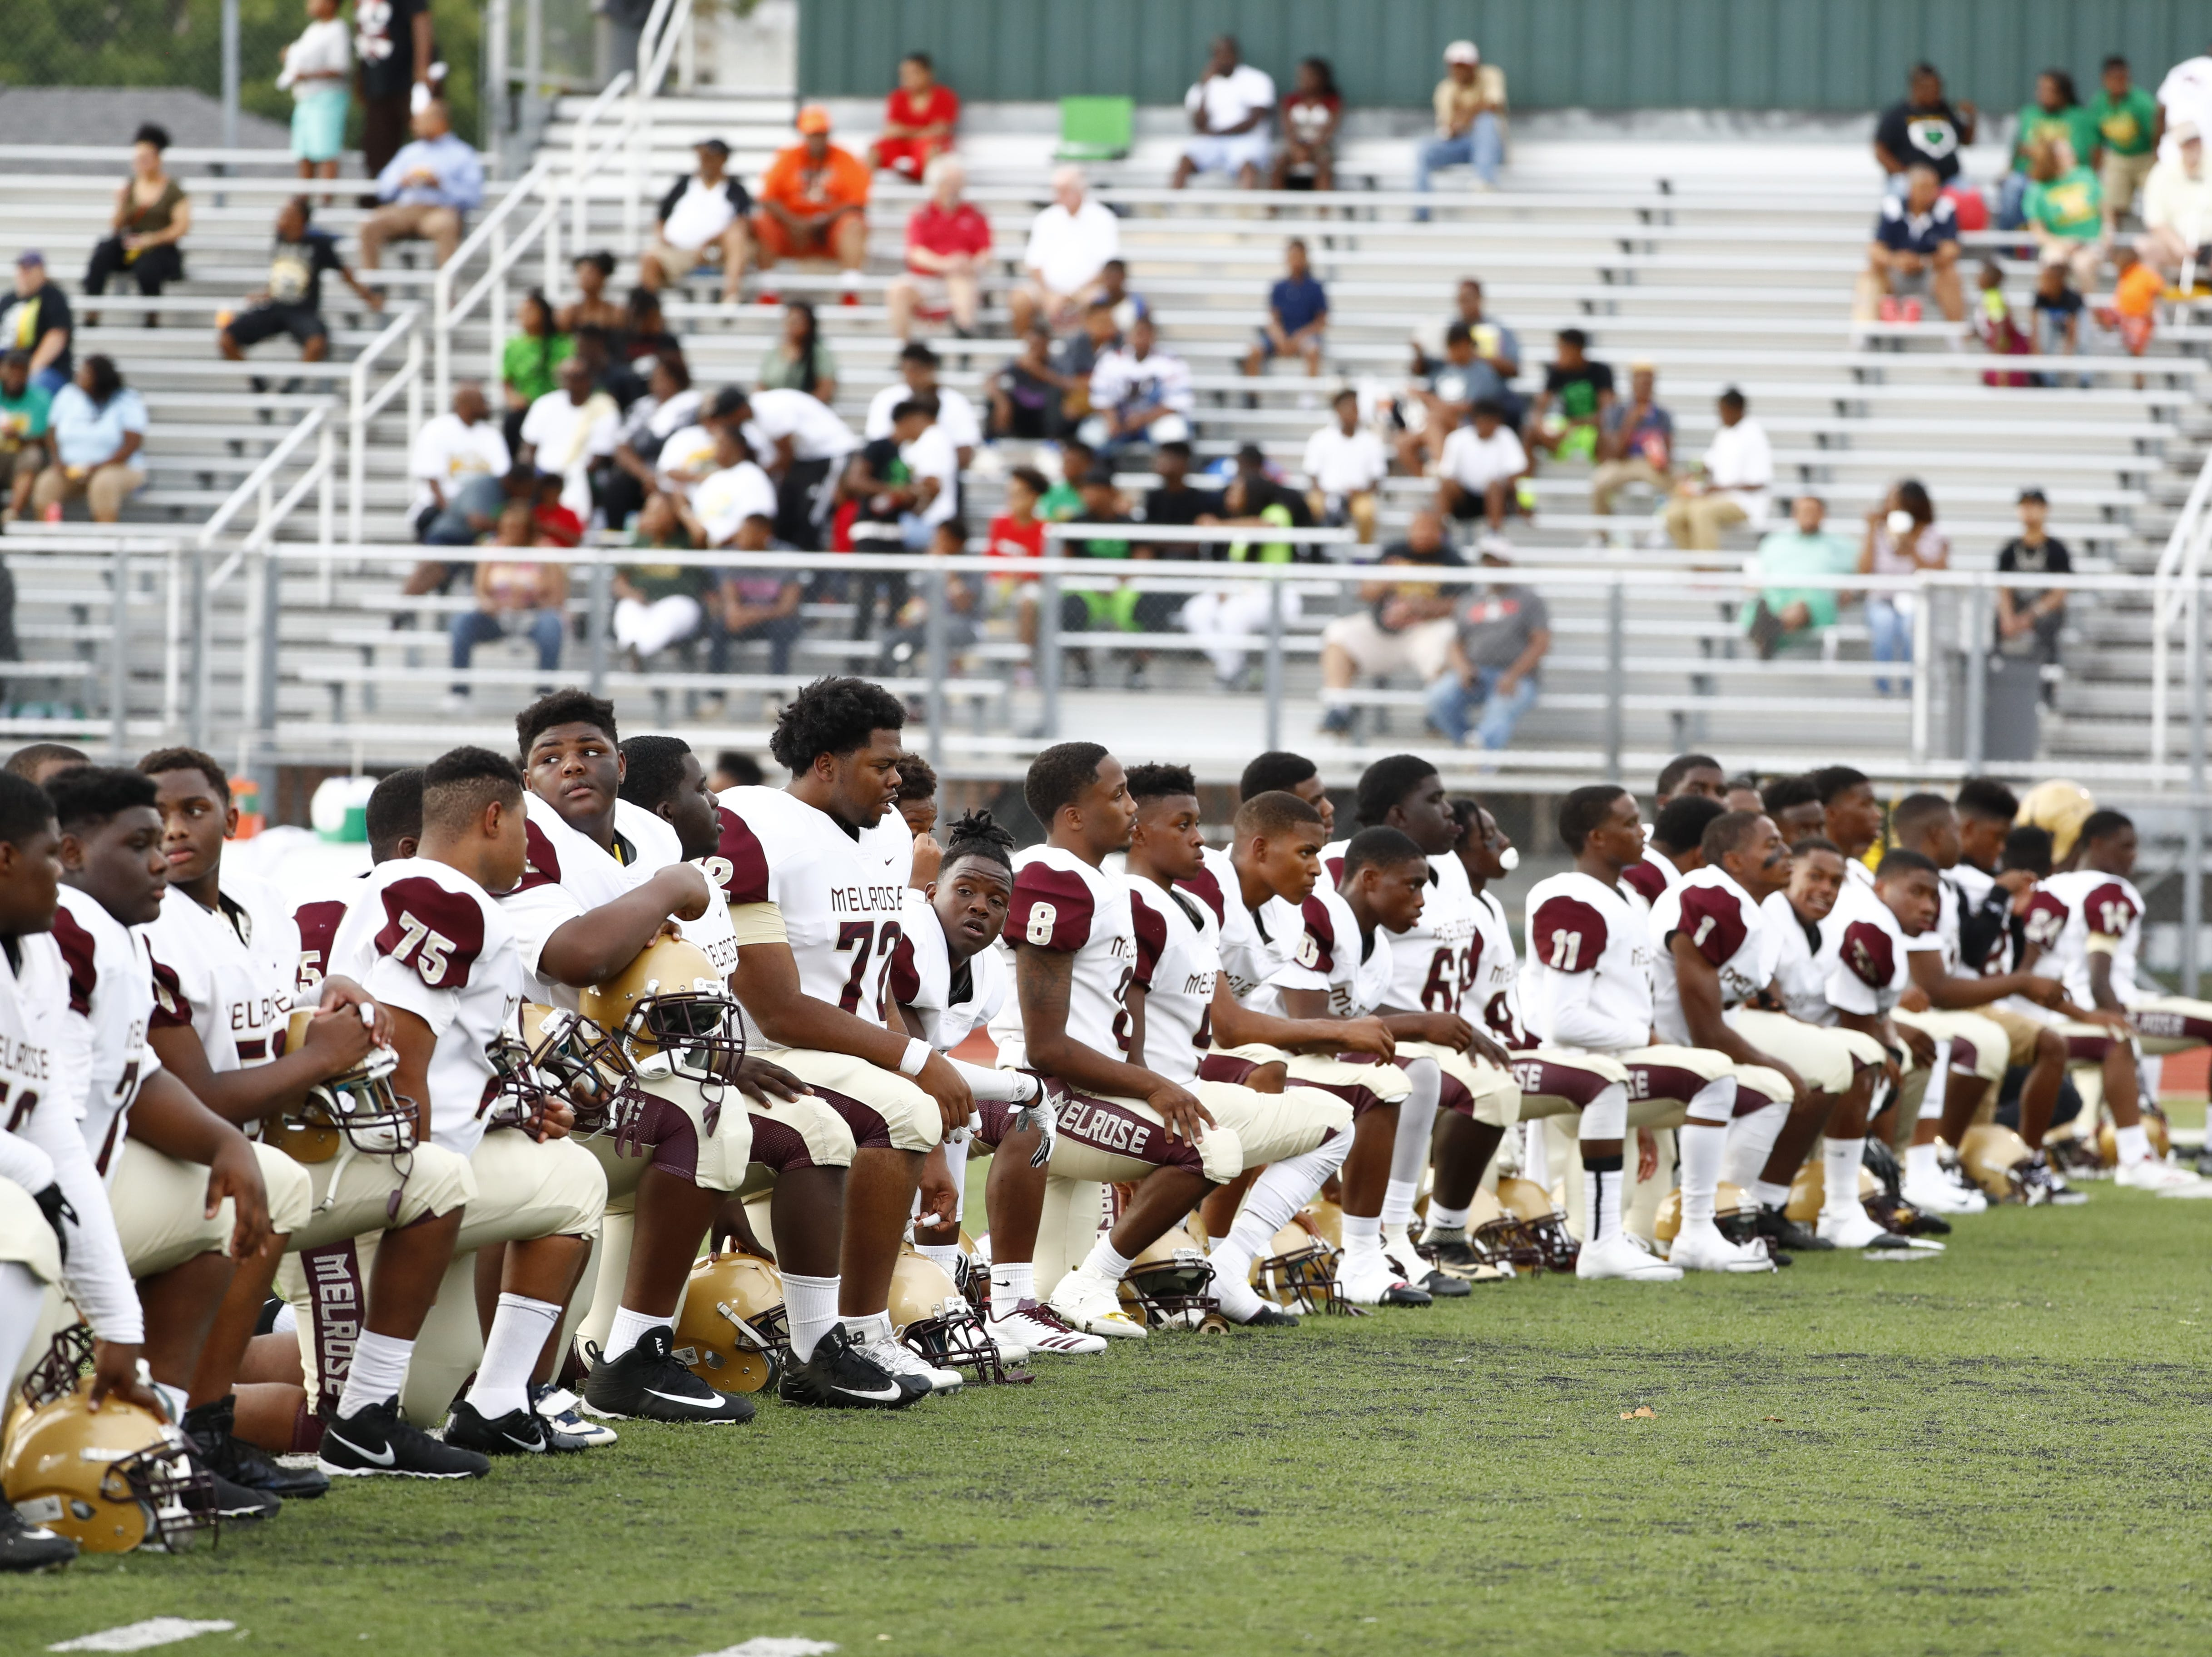 Melrose football players kneel during warm-ups prior to Friday's season-opening game at Central on Aug. 17, 2018.